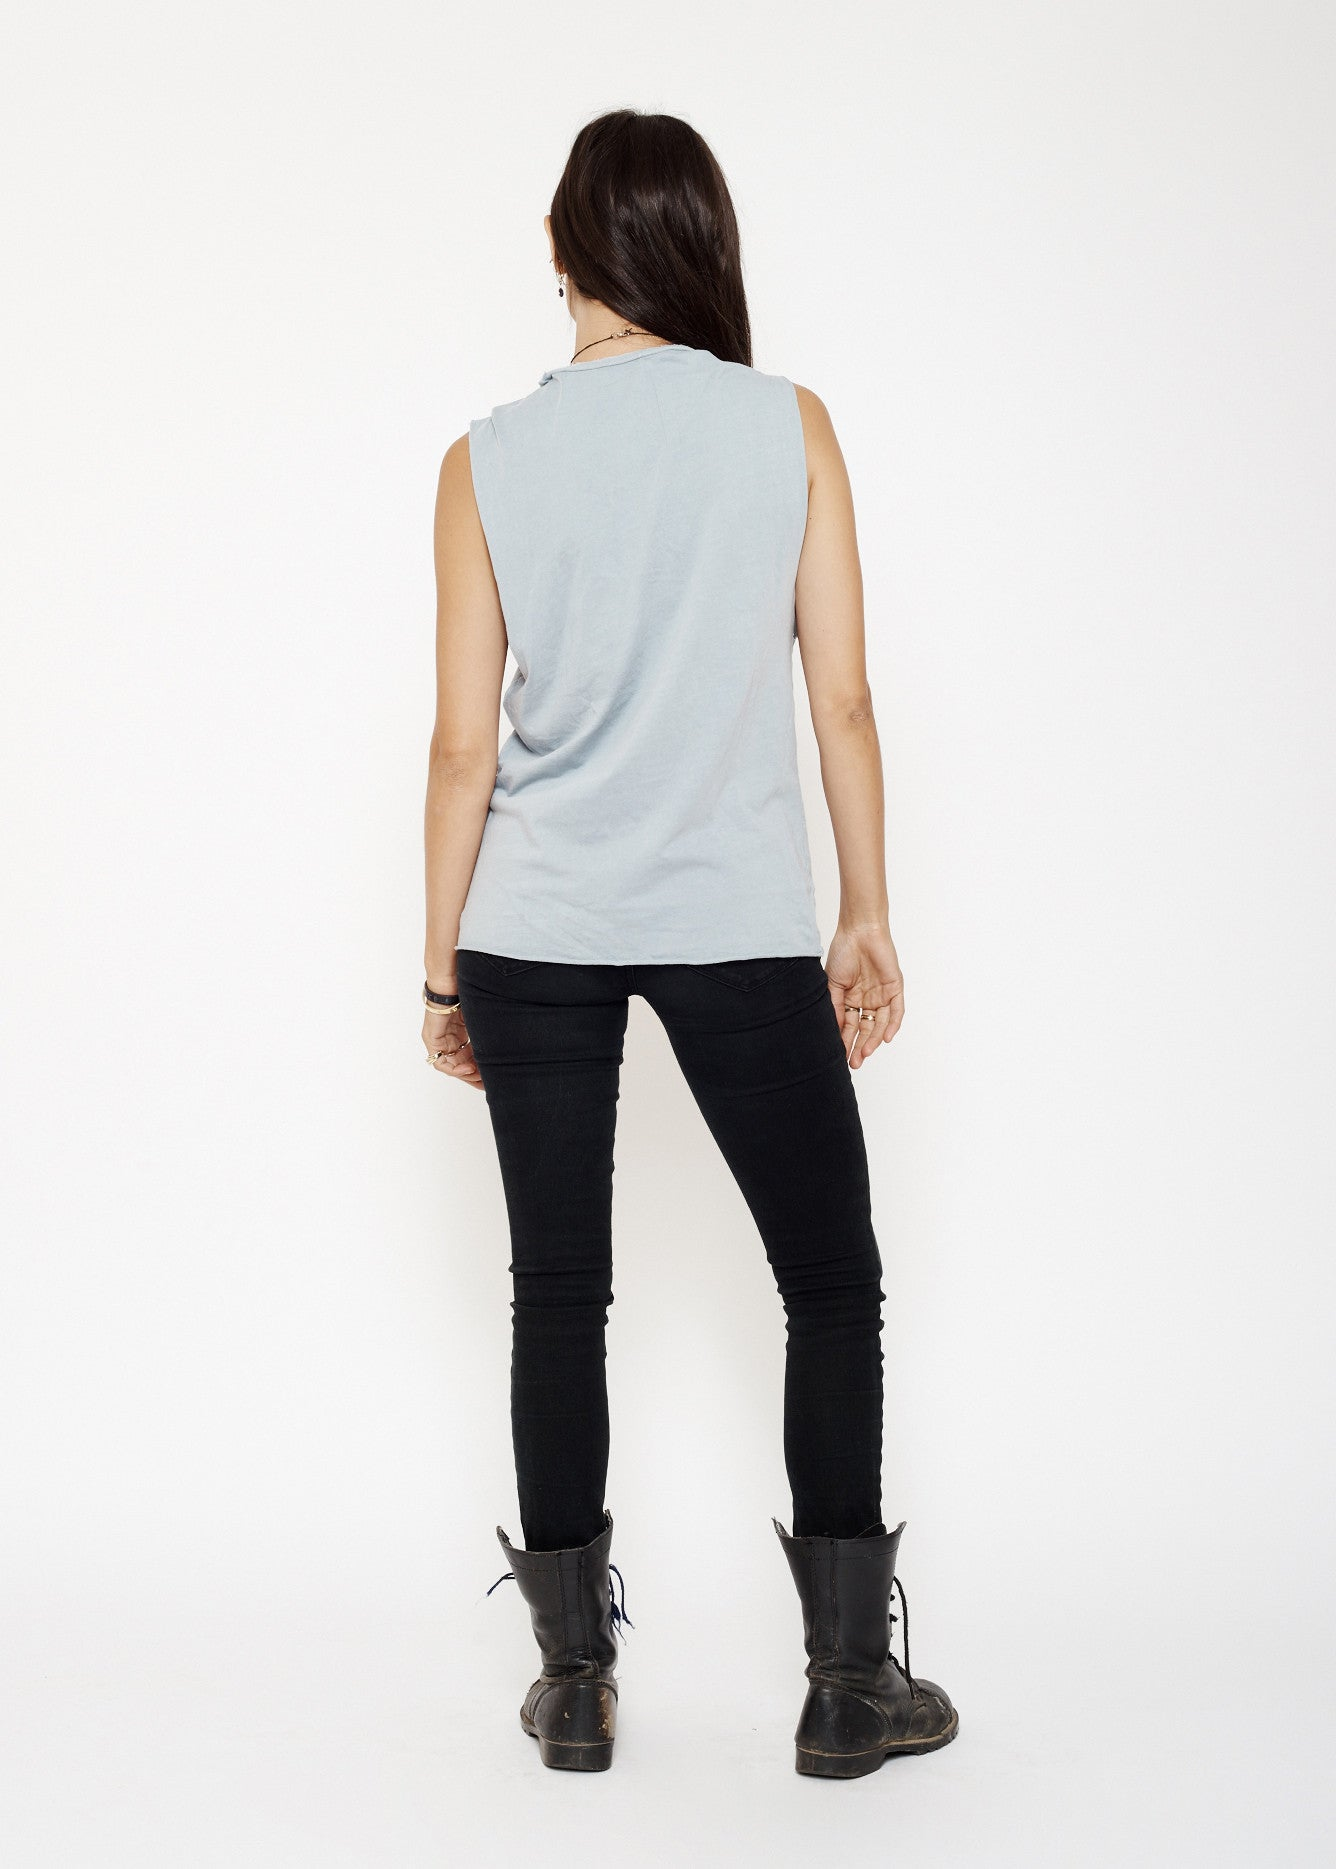 Midnight Rider Logo Muscle Tee - Sky Blue Stone Wash